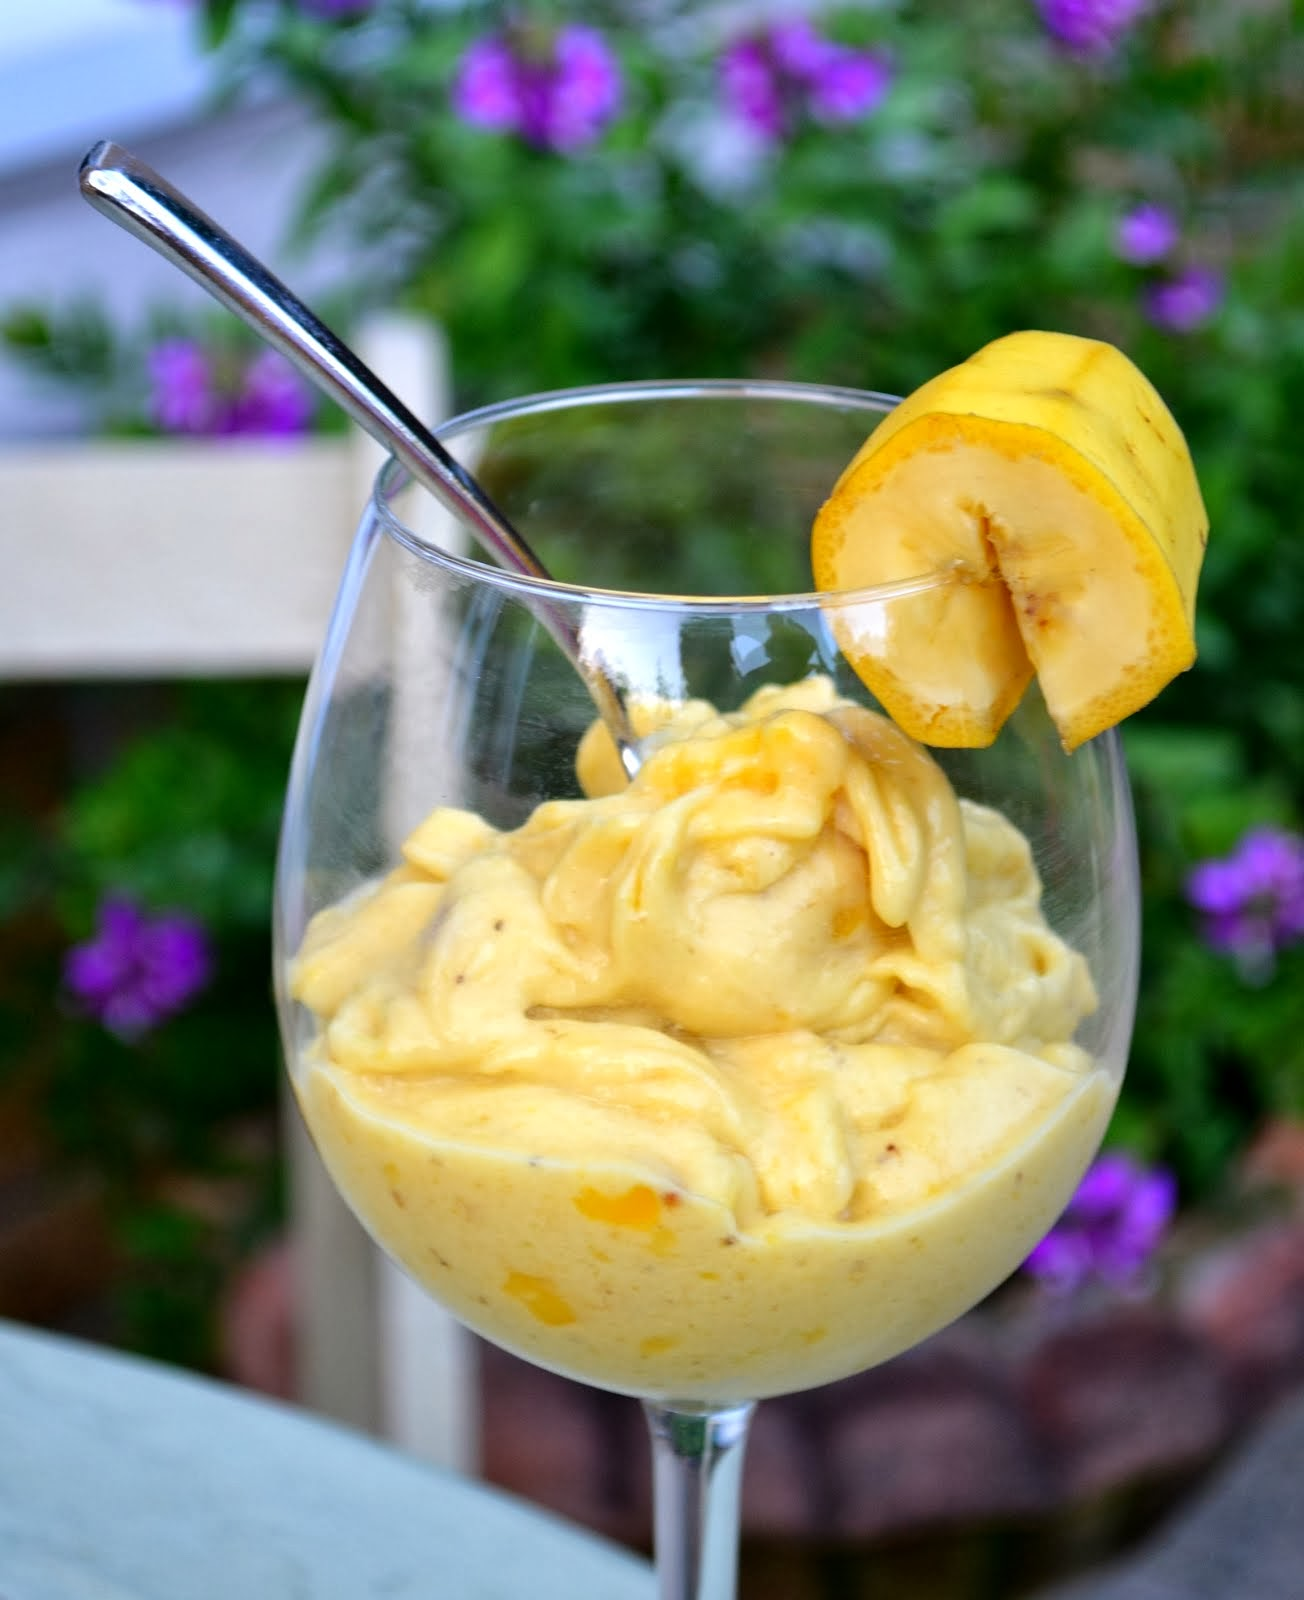 Banana and Mango Sorbet